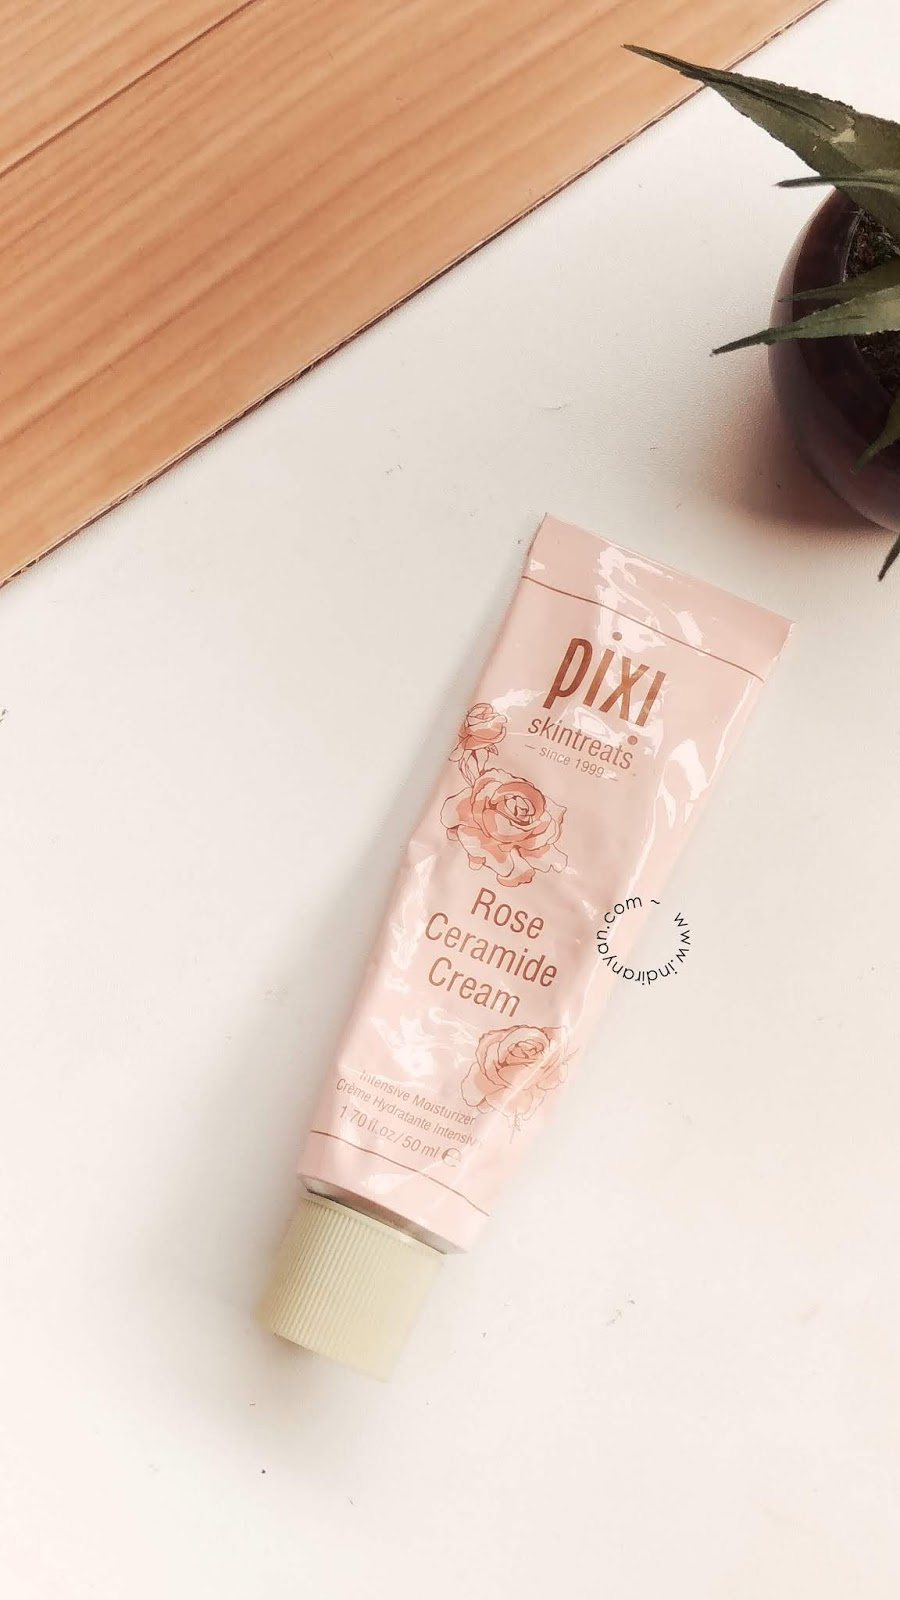 pixi-rose-ceramide-cream-review-indonesia